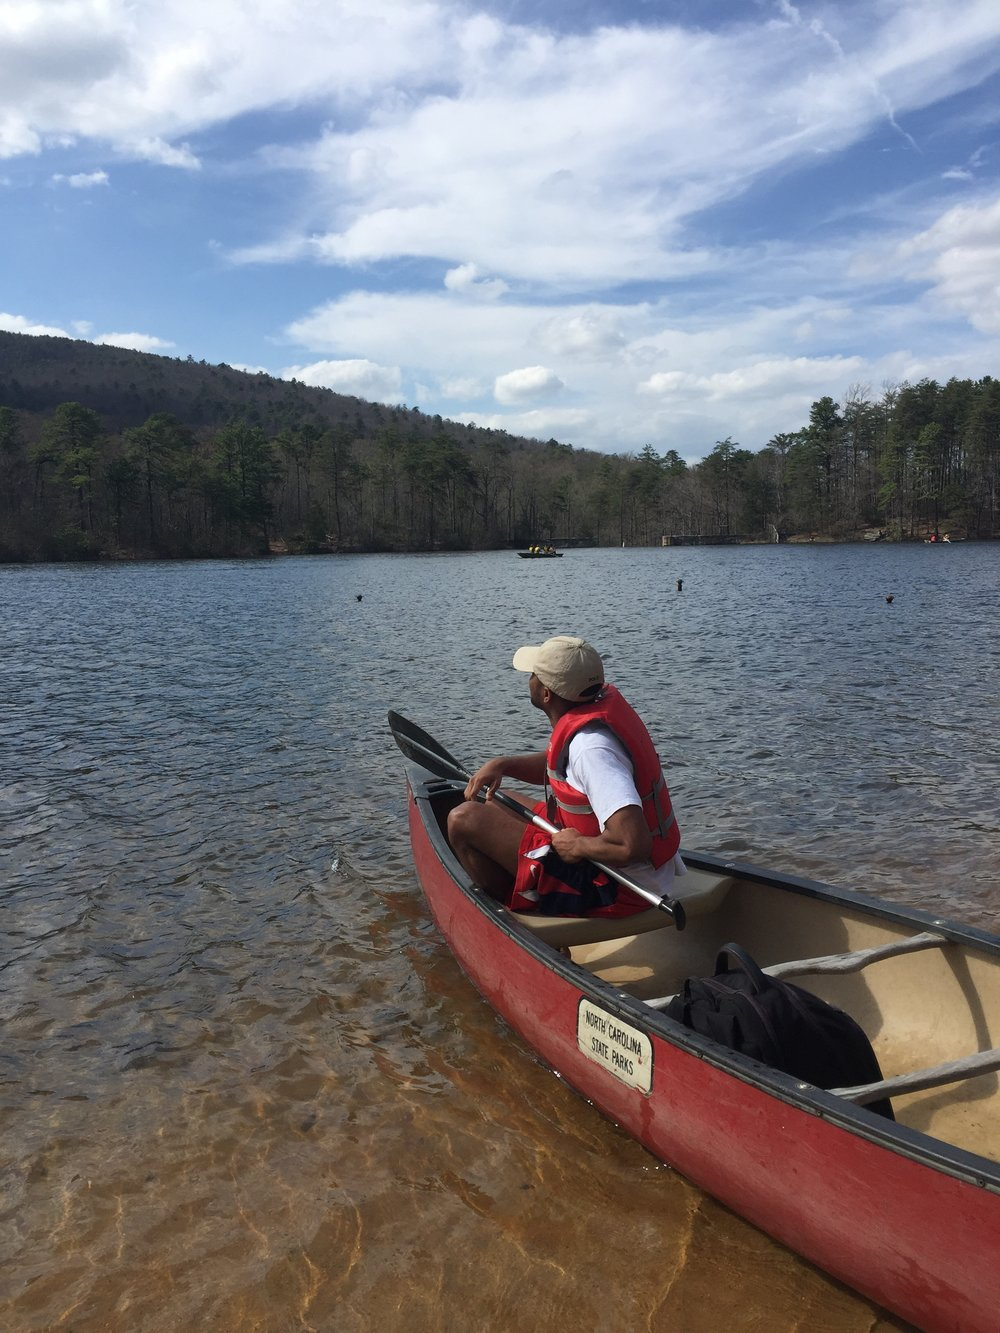 Canoeing at Hanging Rock State Park, Danbury, NC